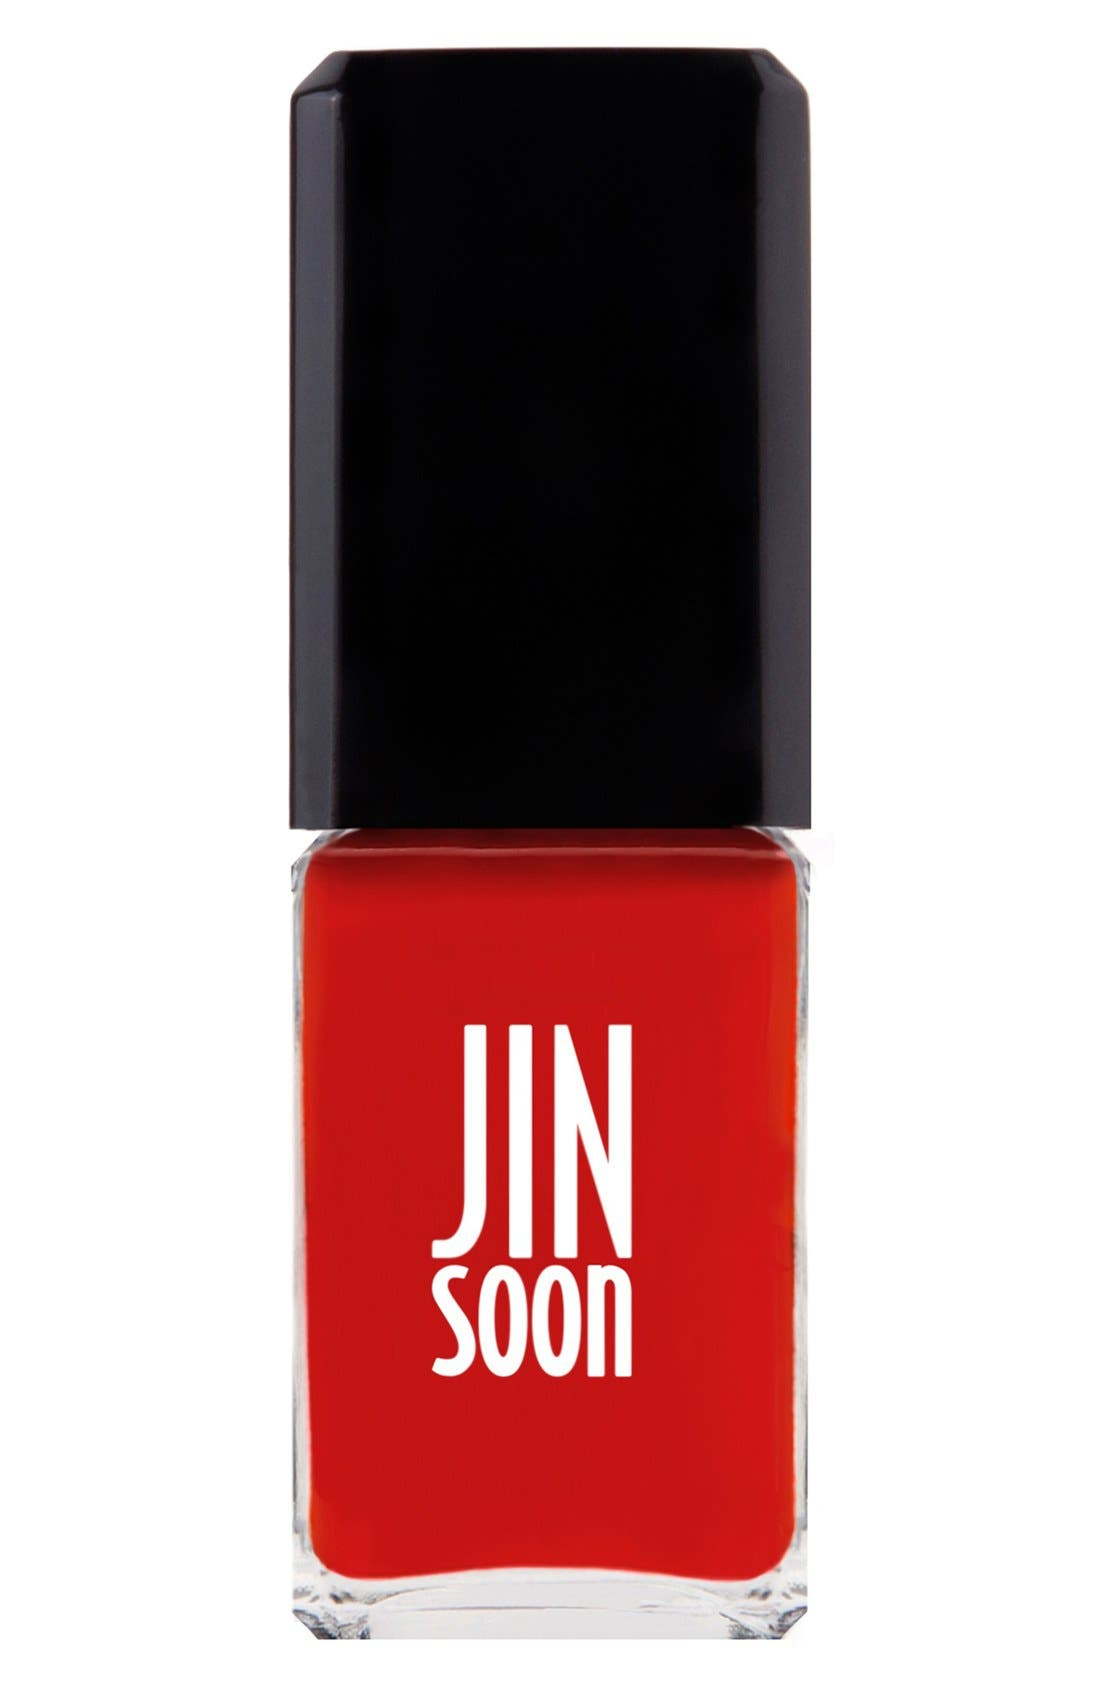 JINsoon 'Pop Orange' Nail Lacquer